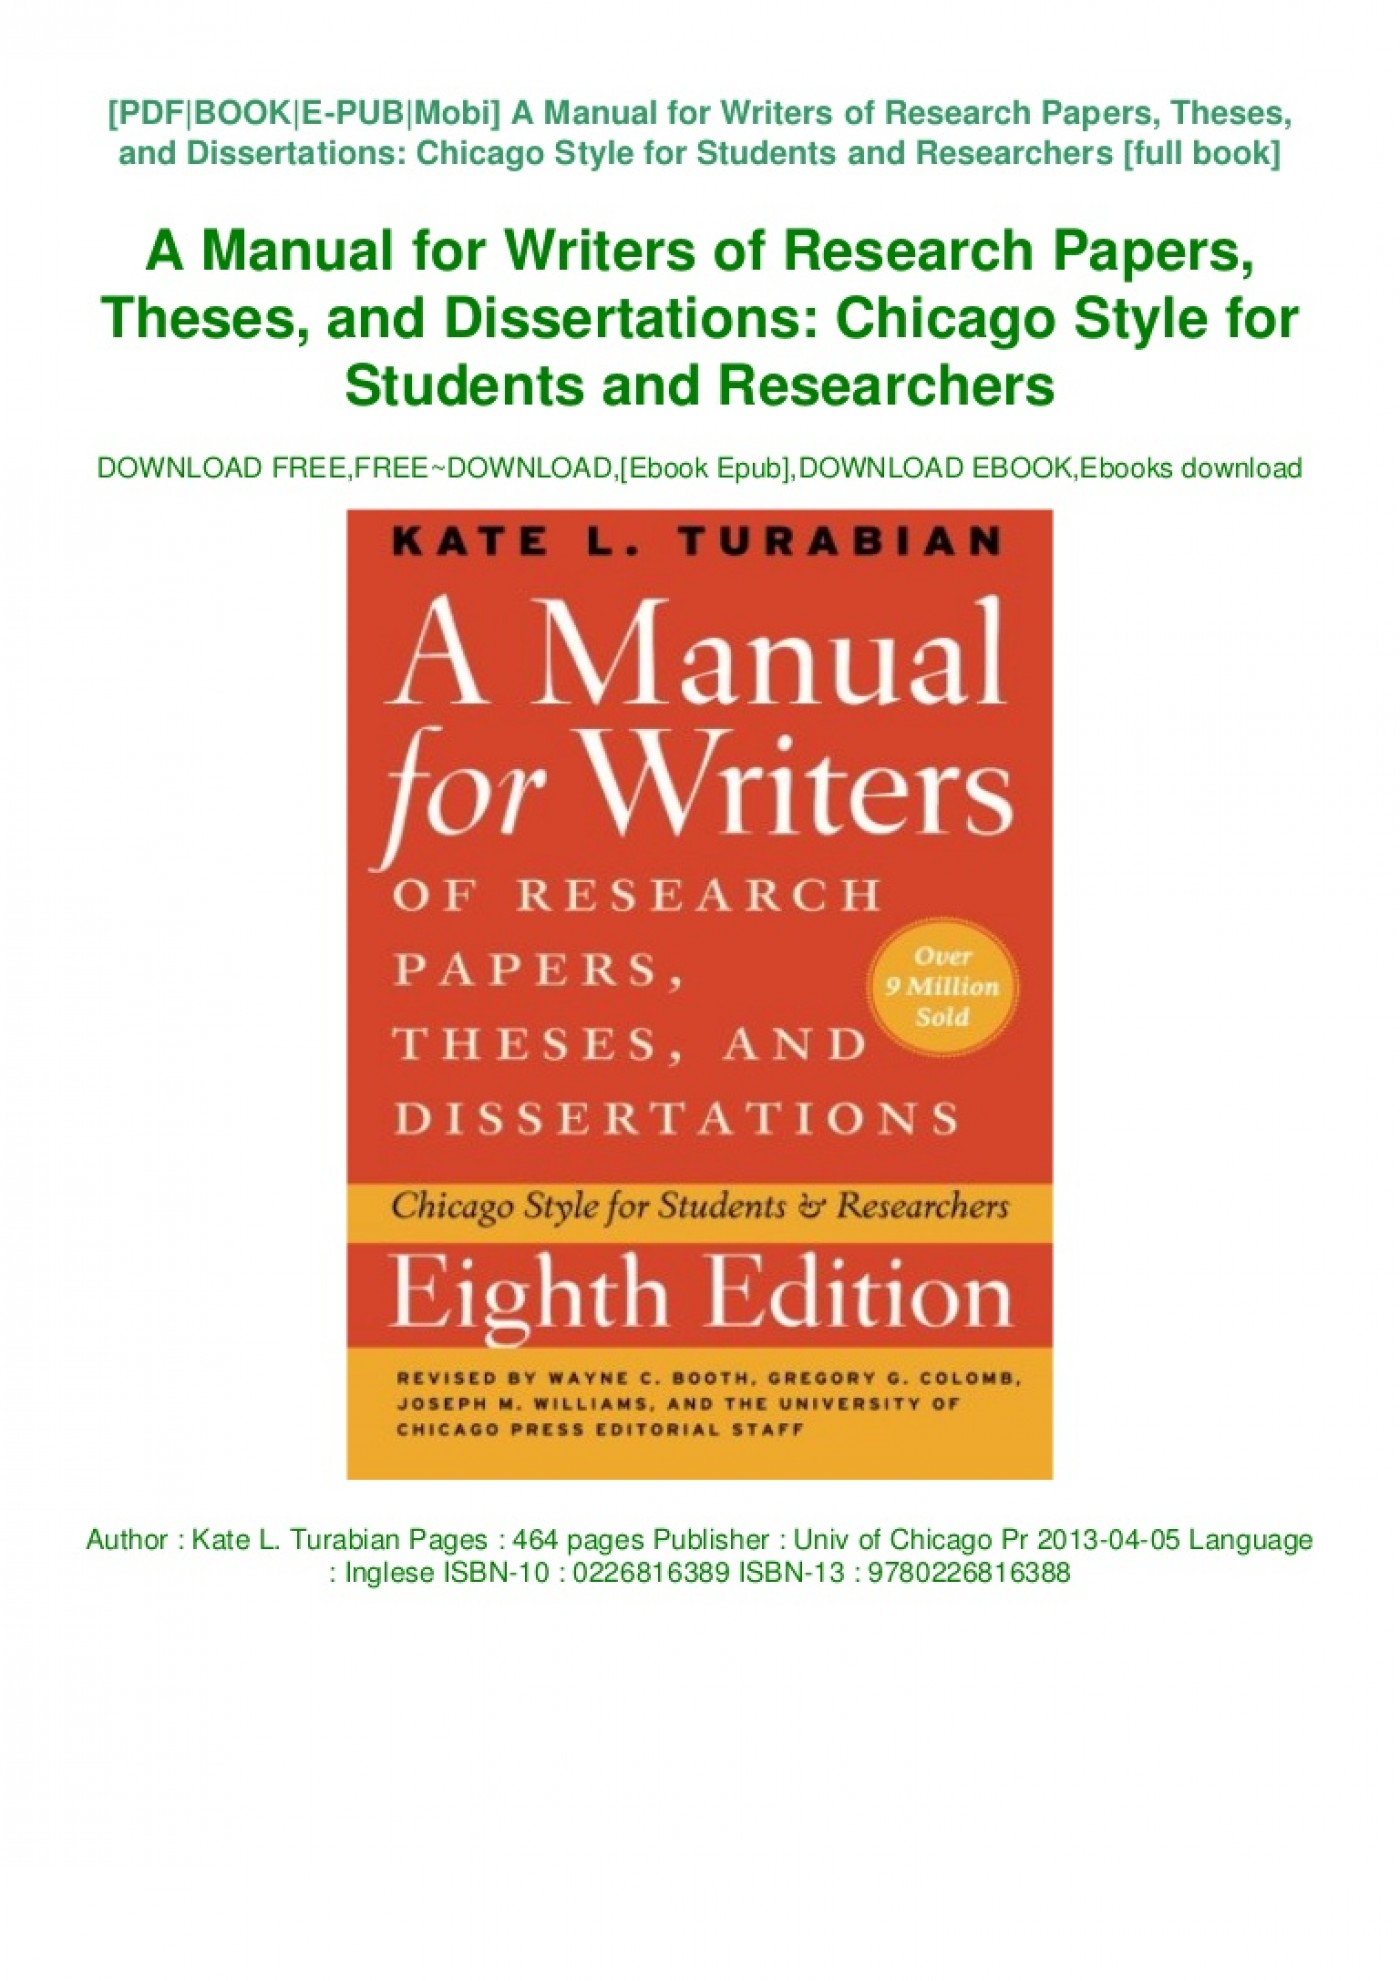 002 Manual For Writers Of Researchs Theses And Dissertations Ebook Book Thumbnail Unbelievable A Research Papers 1400